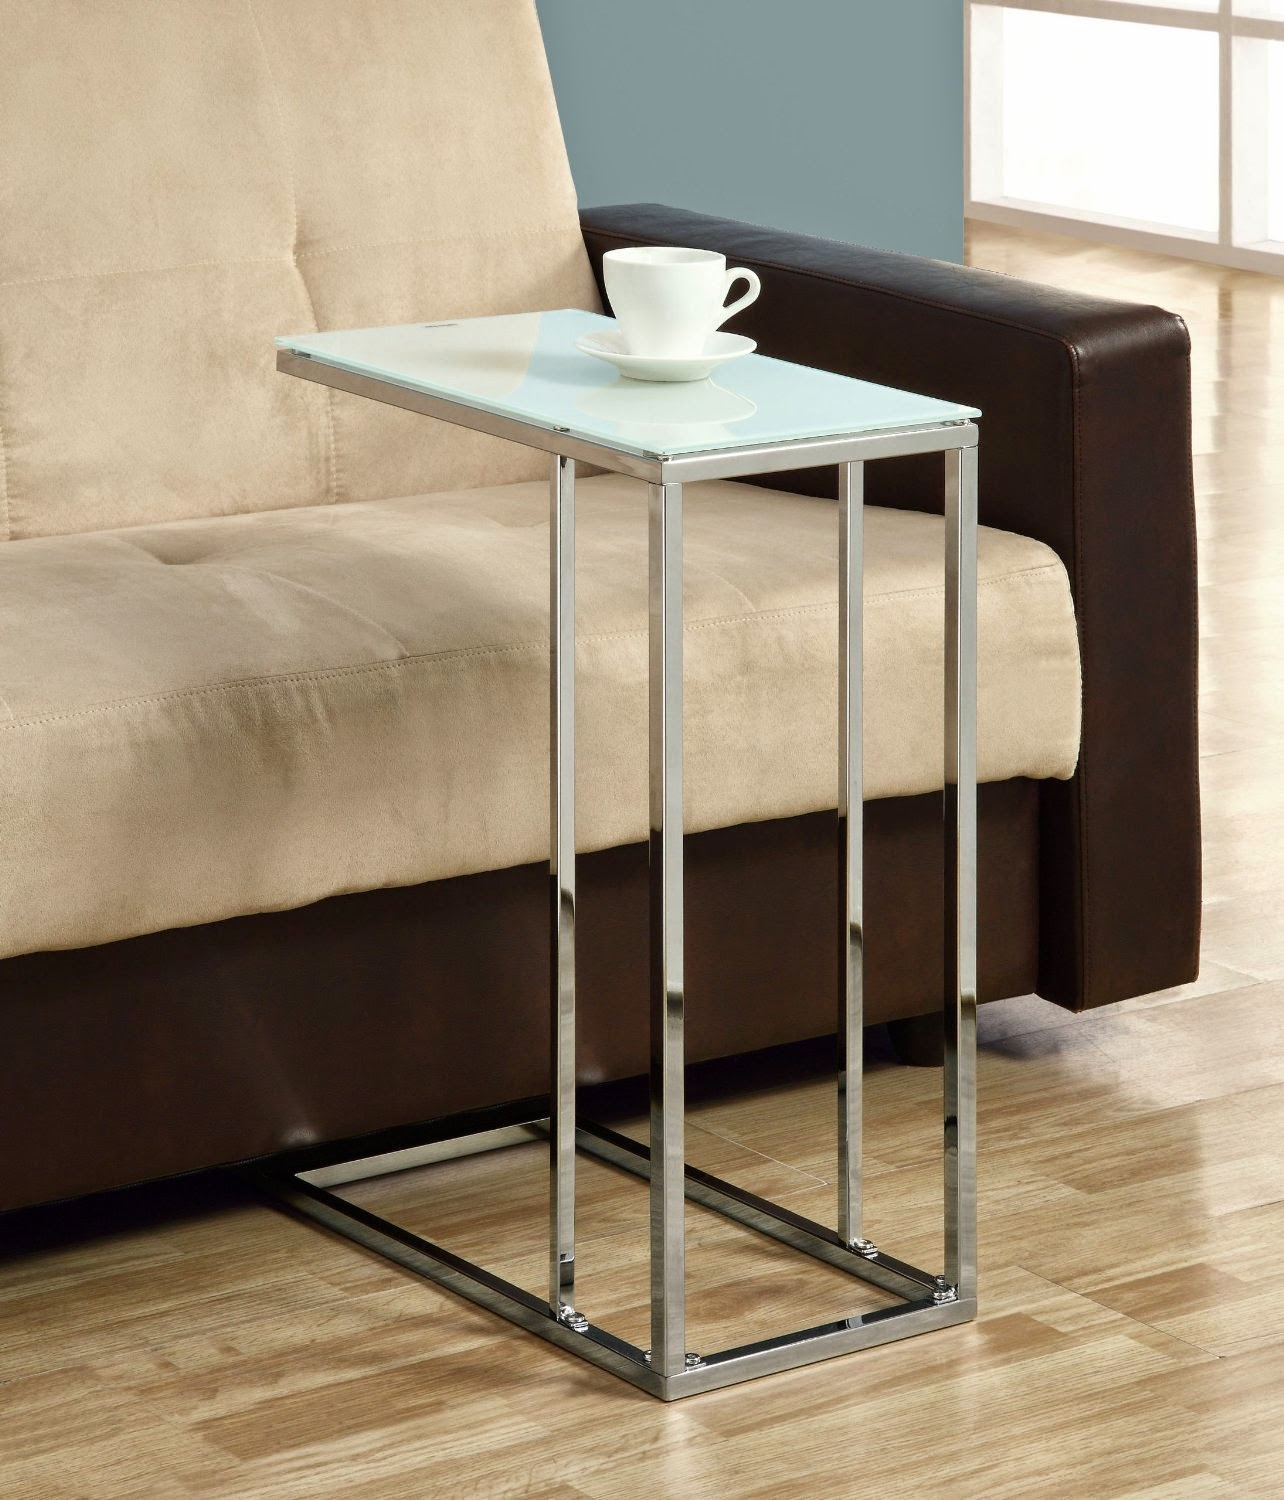 Small Table That Slides Under Sofa Garden Furniture Corner Sets Quirky Name For A Novel Concept The Slide Couch